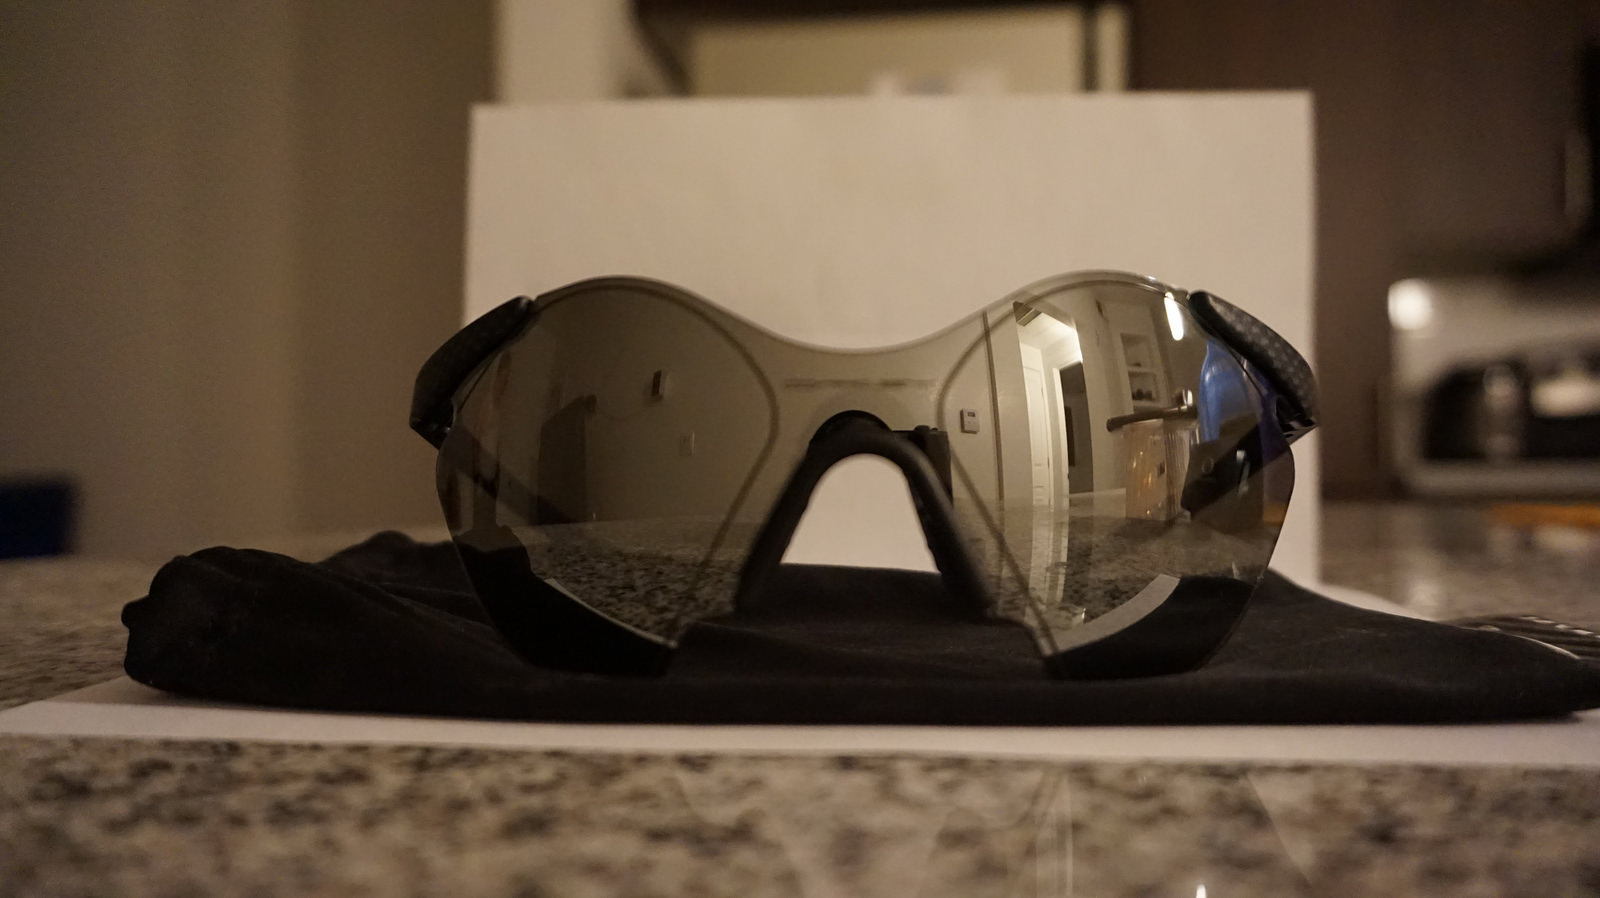 Oakley Sub Zero #5 Carbon Fiber Complete (reduced) - 41194849785_588ea8b261_h.jpg